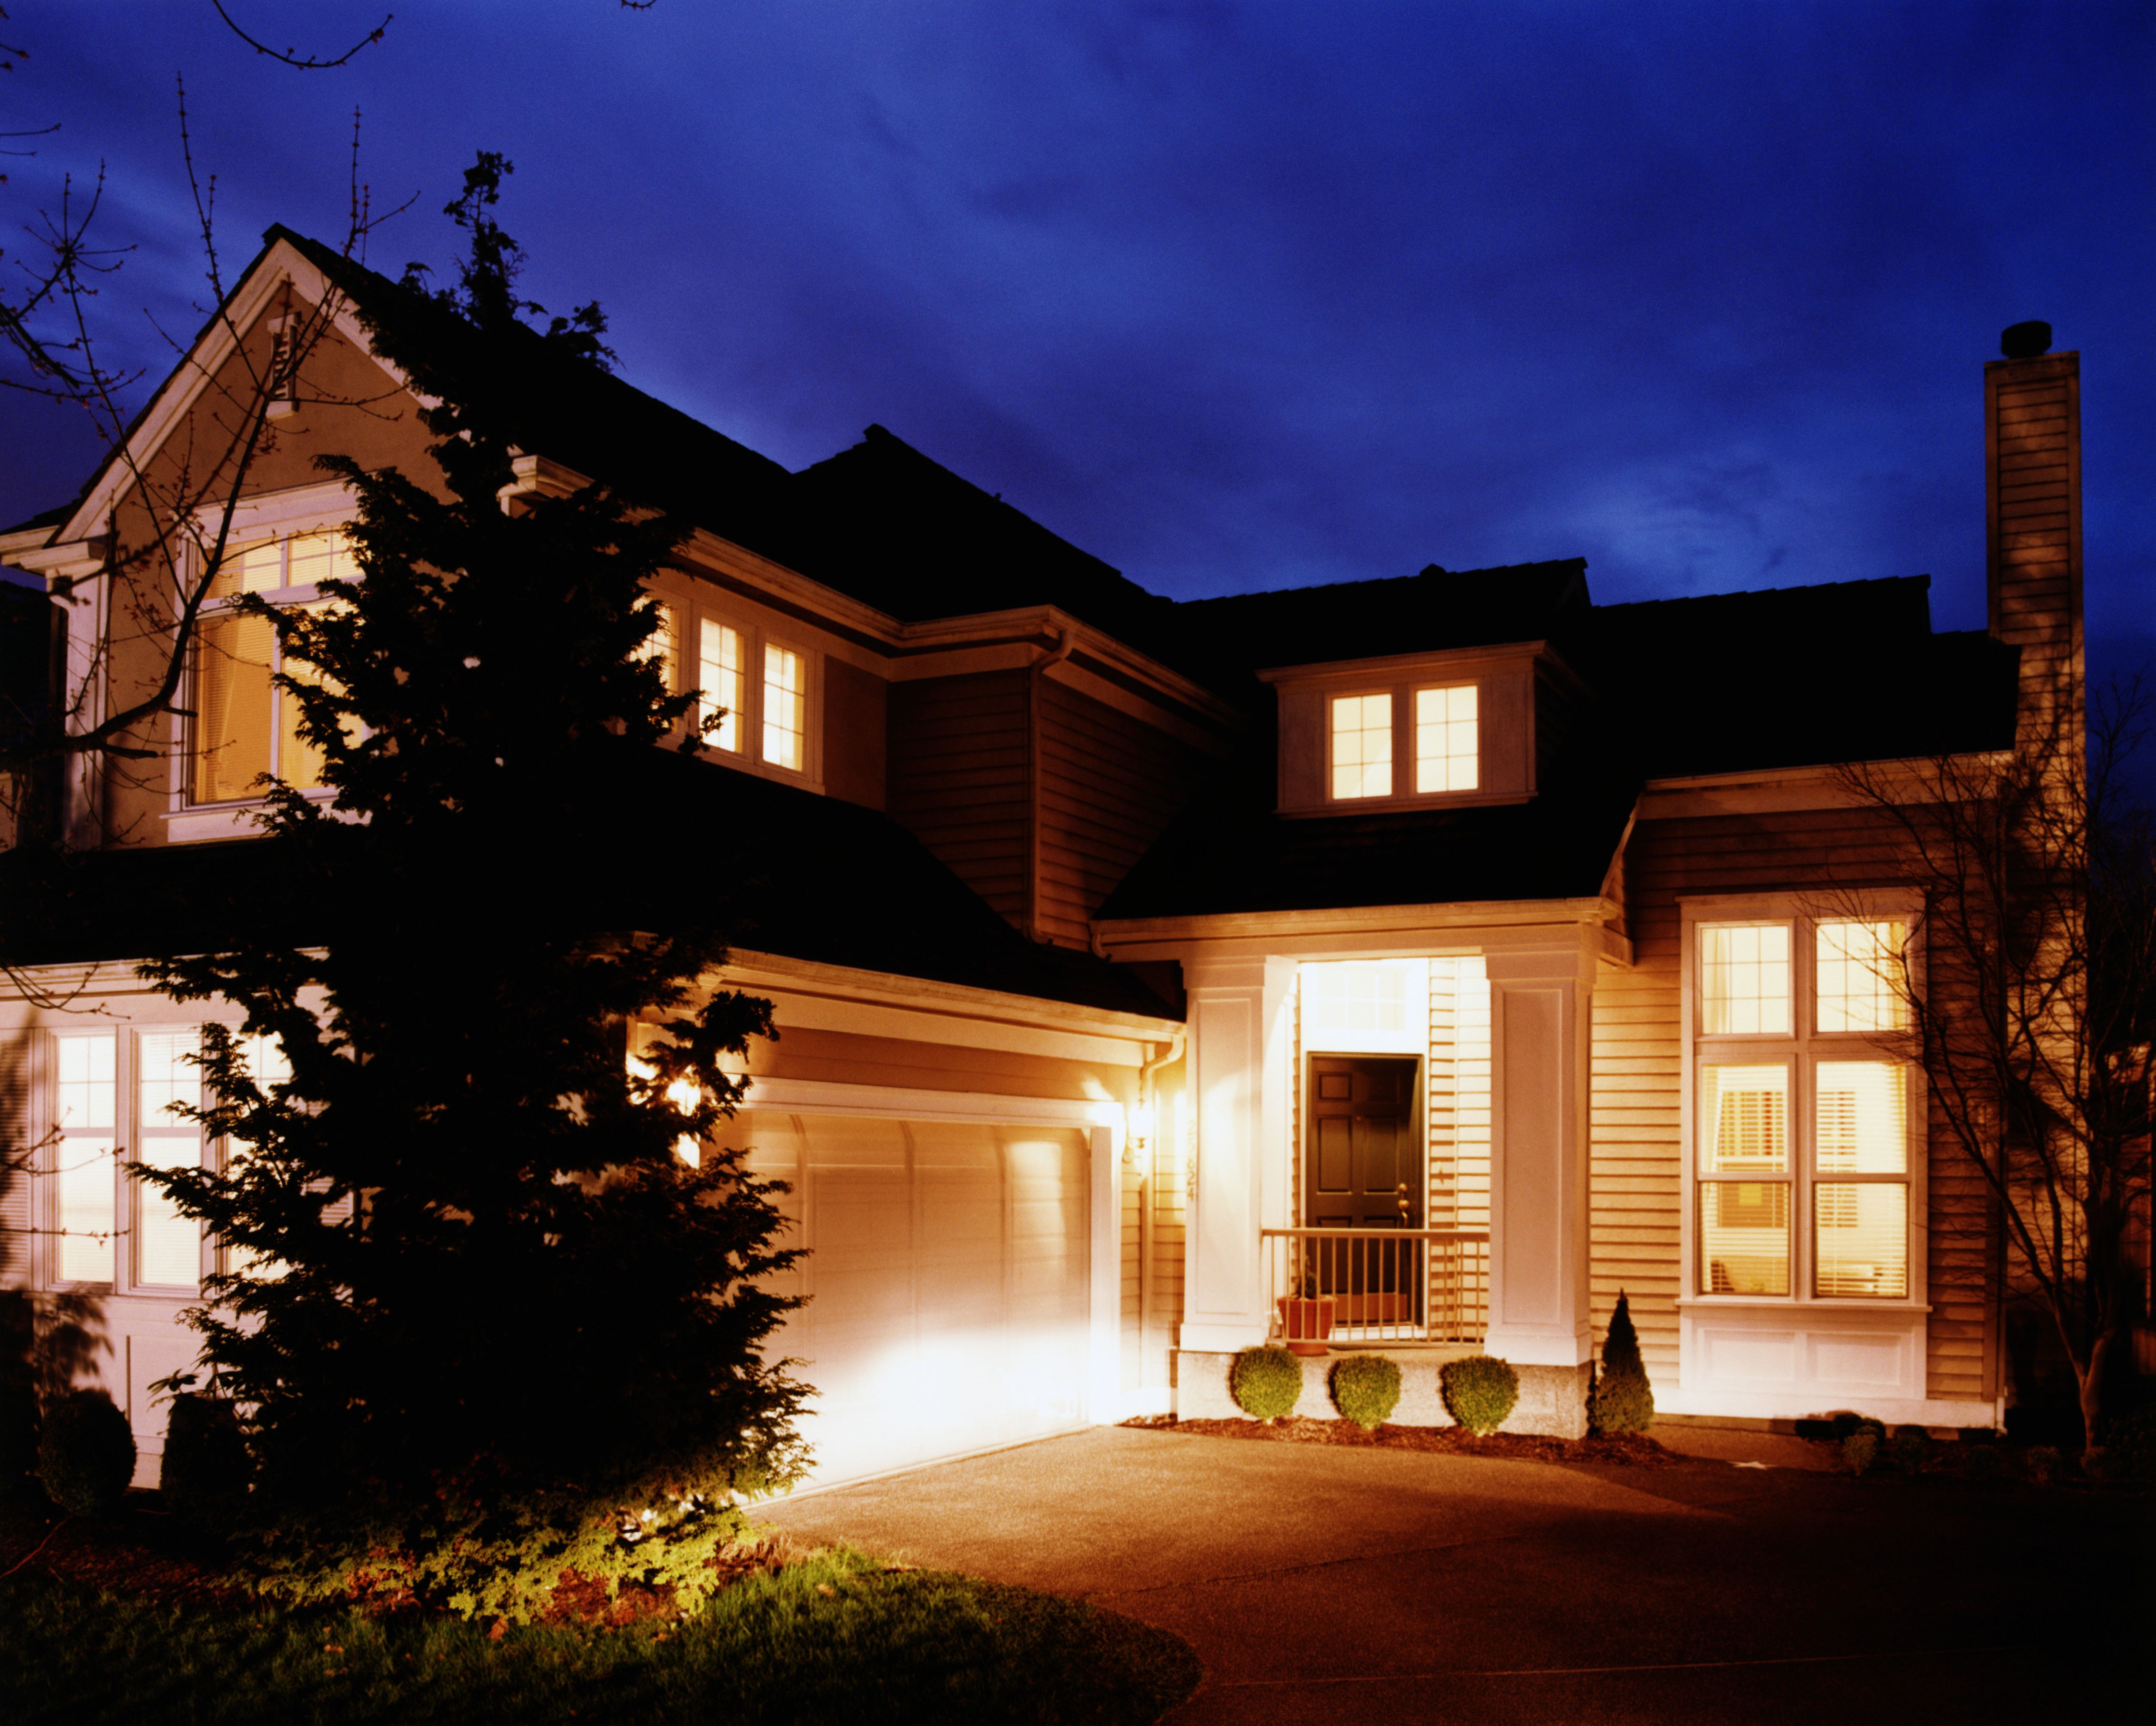 Top 11 tips for safe outdoor lighting choose the best outdoor security lights for your home mozeypictures